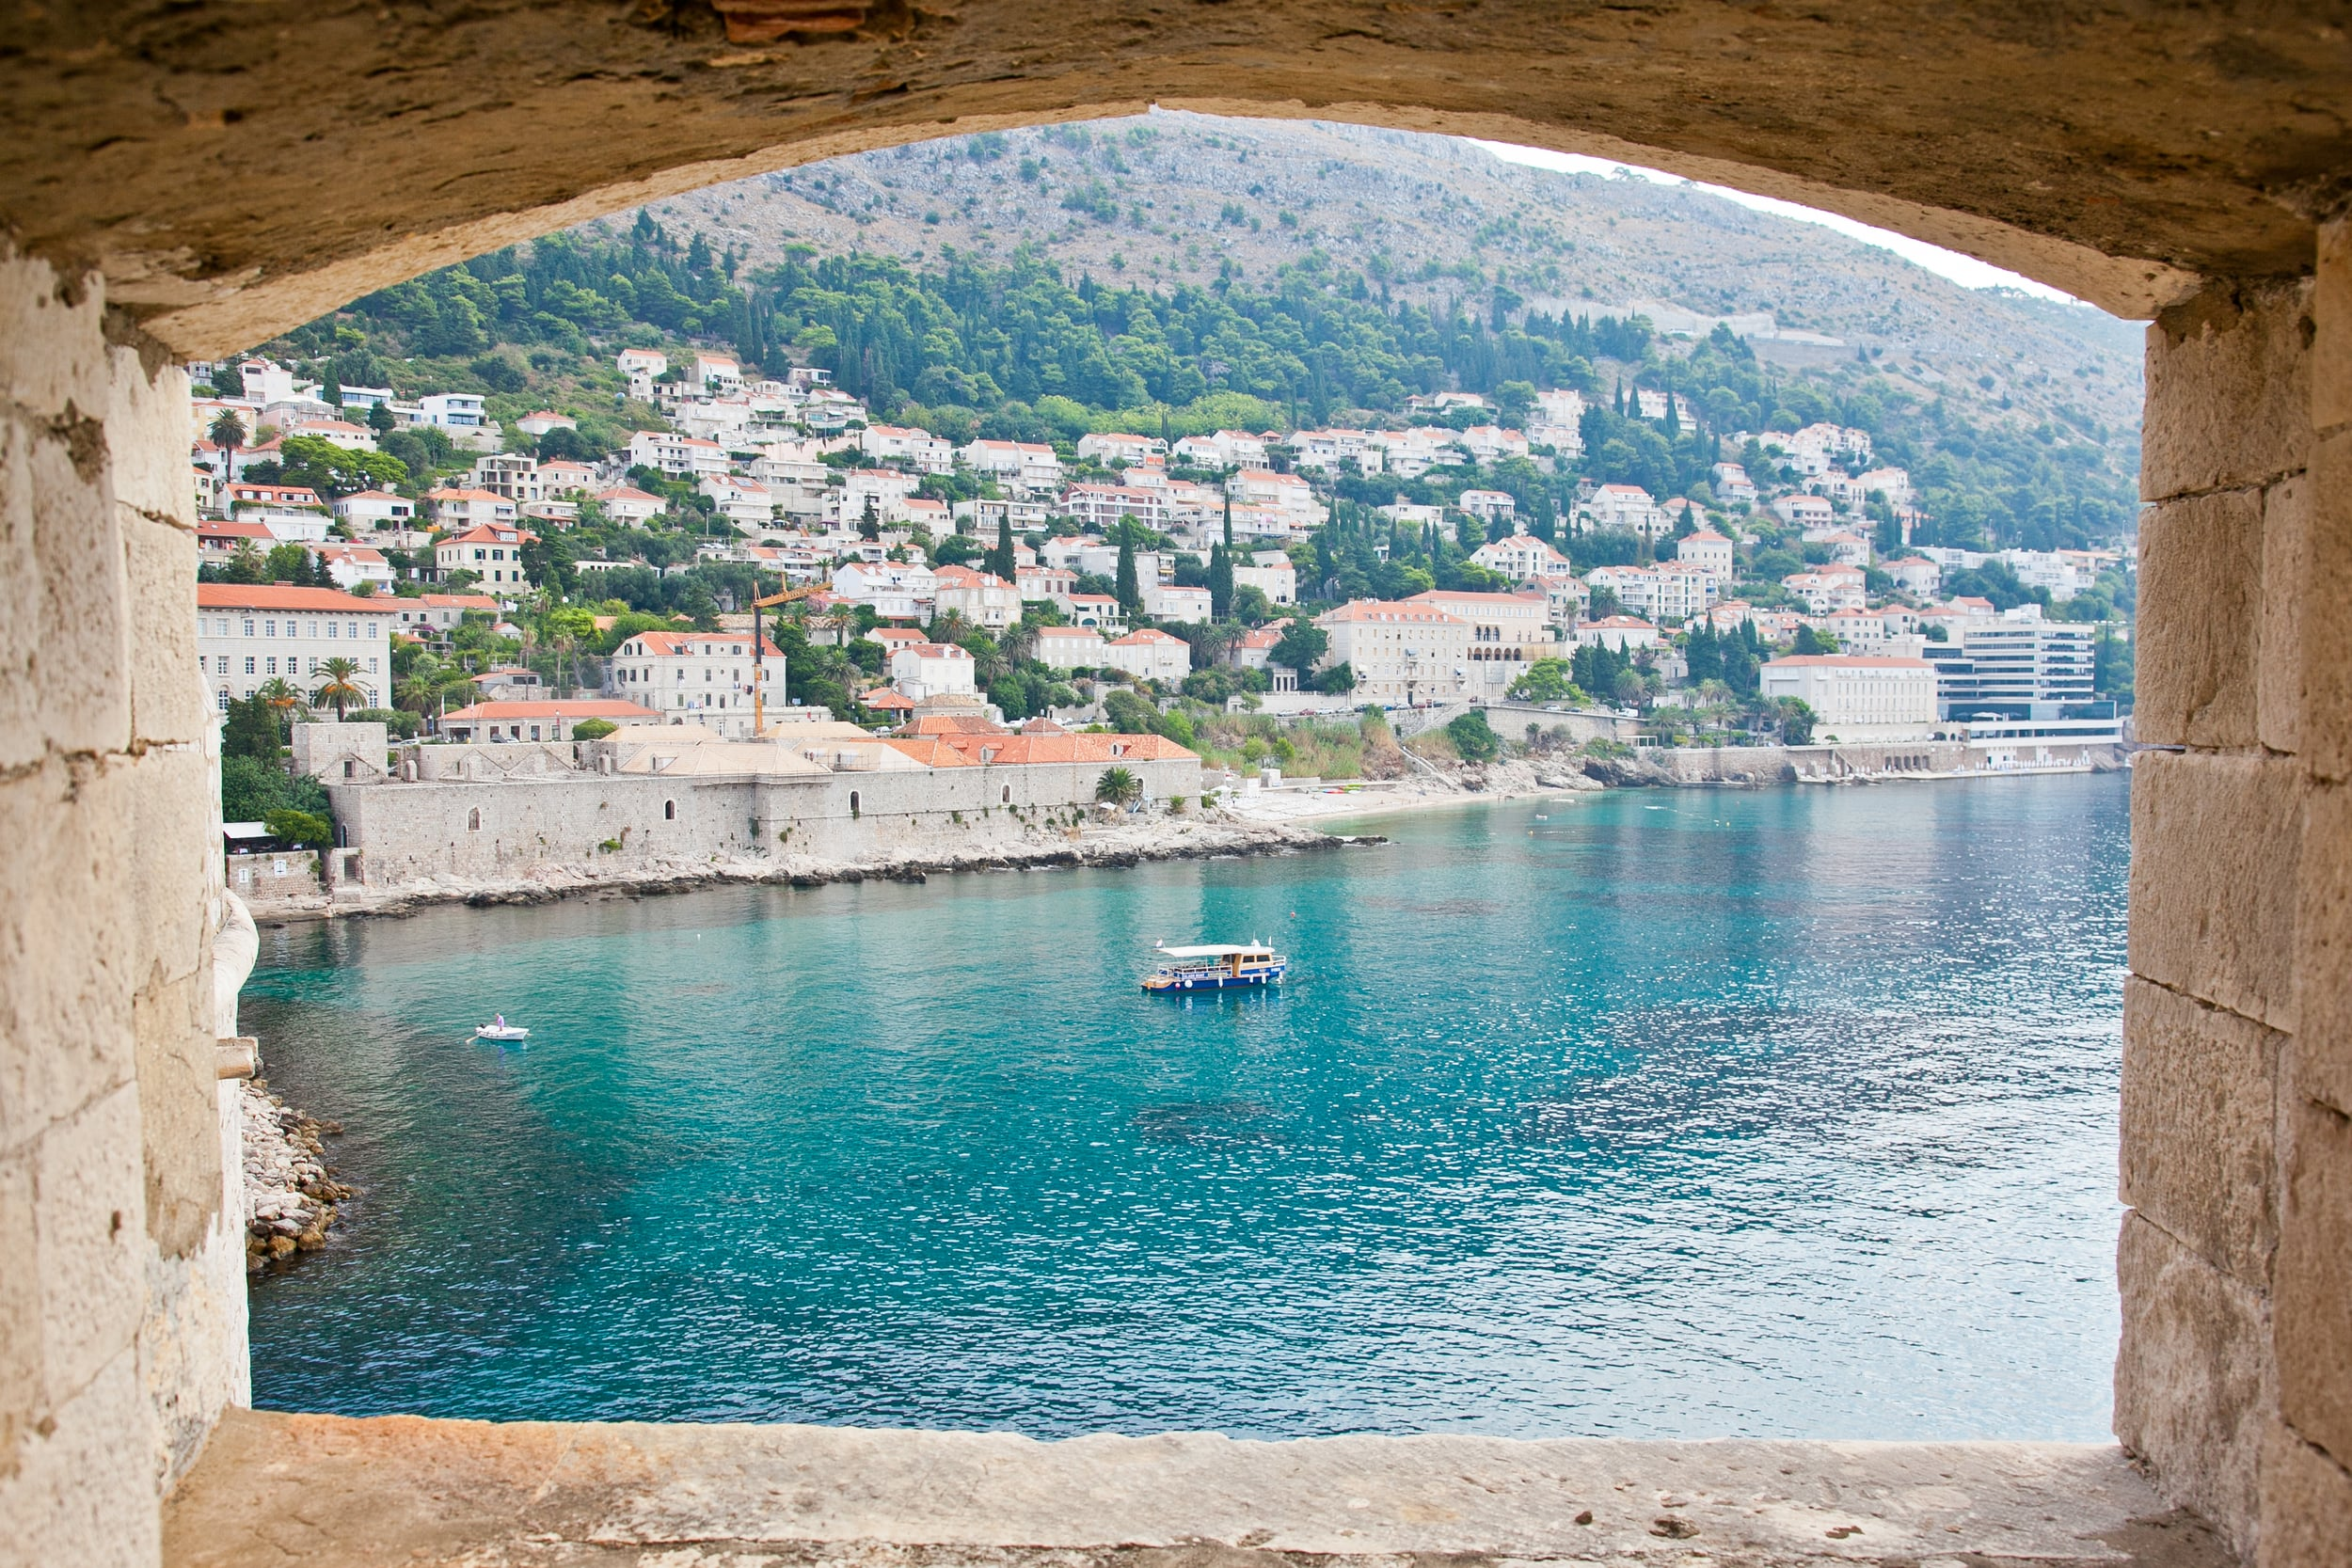 trisa-taro-view-through-window-framed-dubrovnik-croatia.jpg